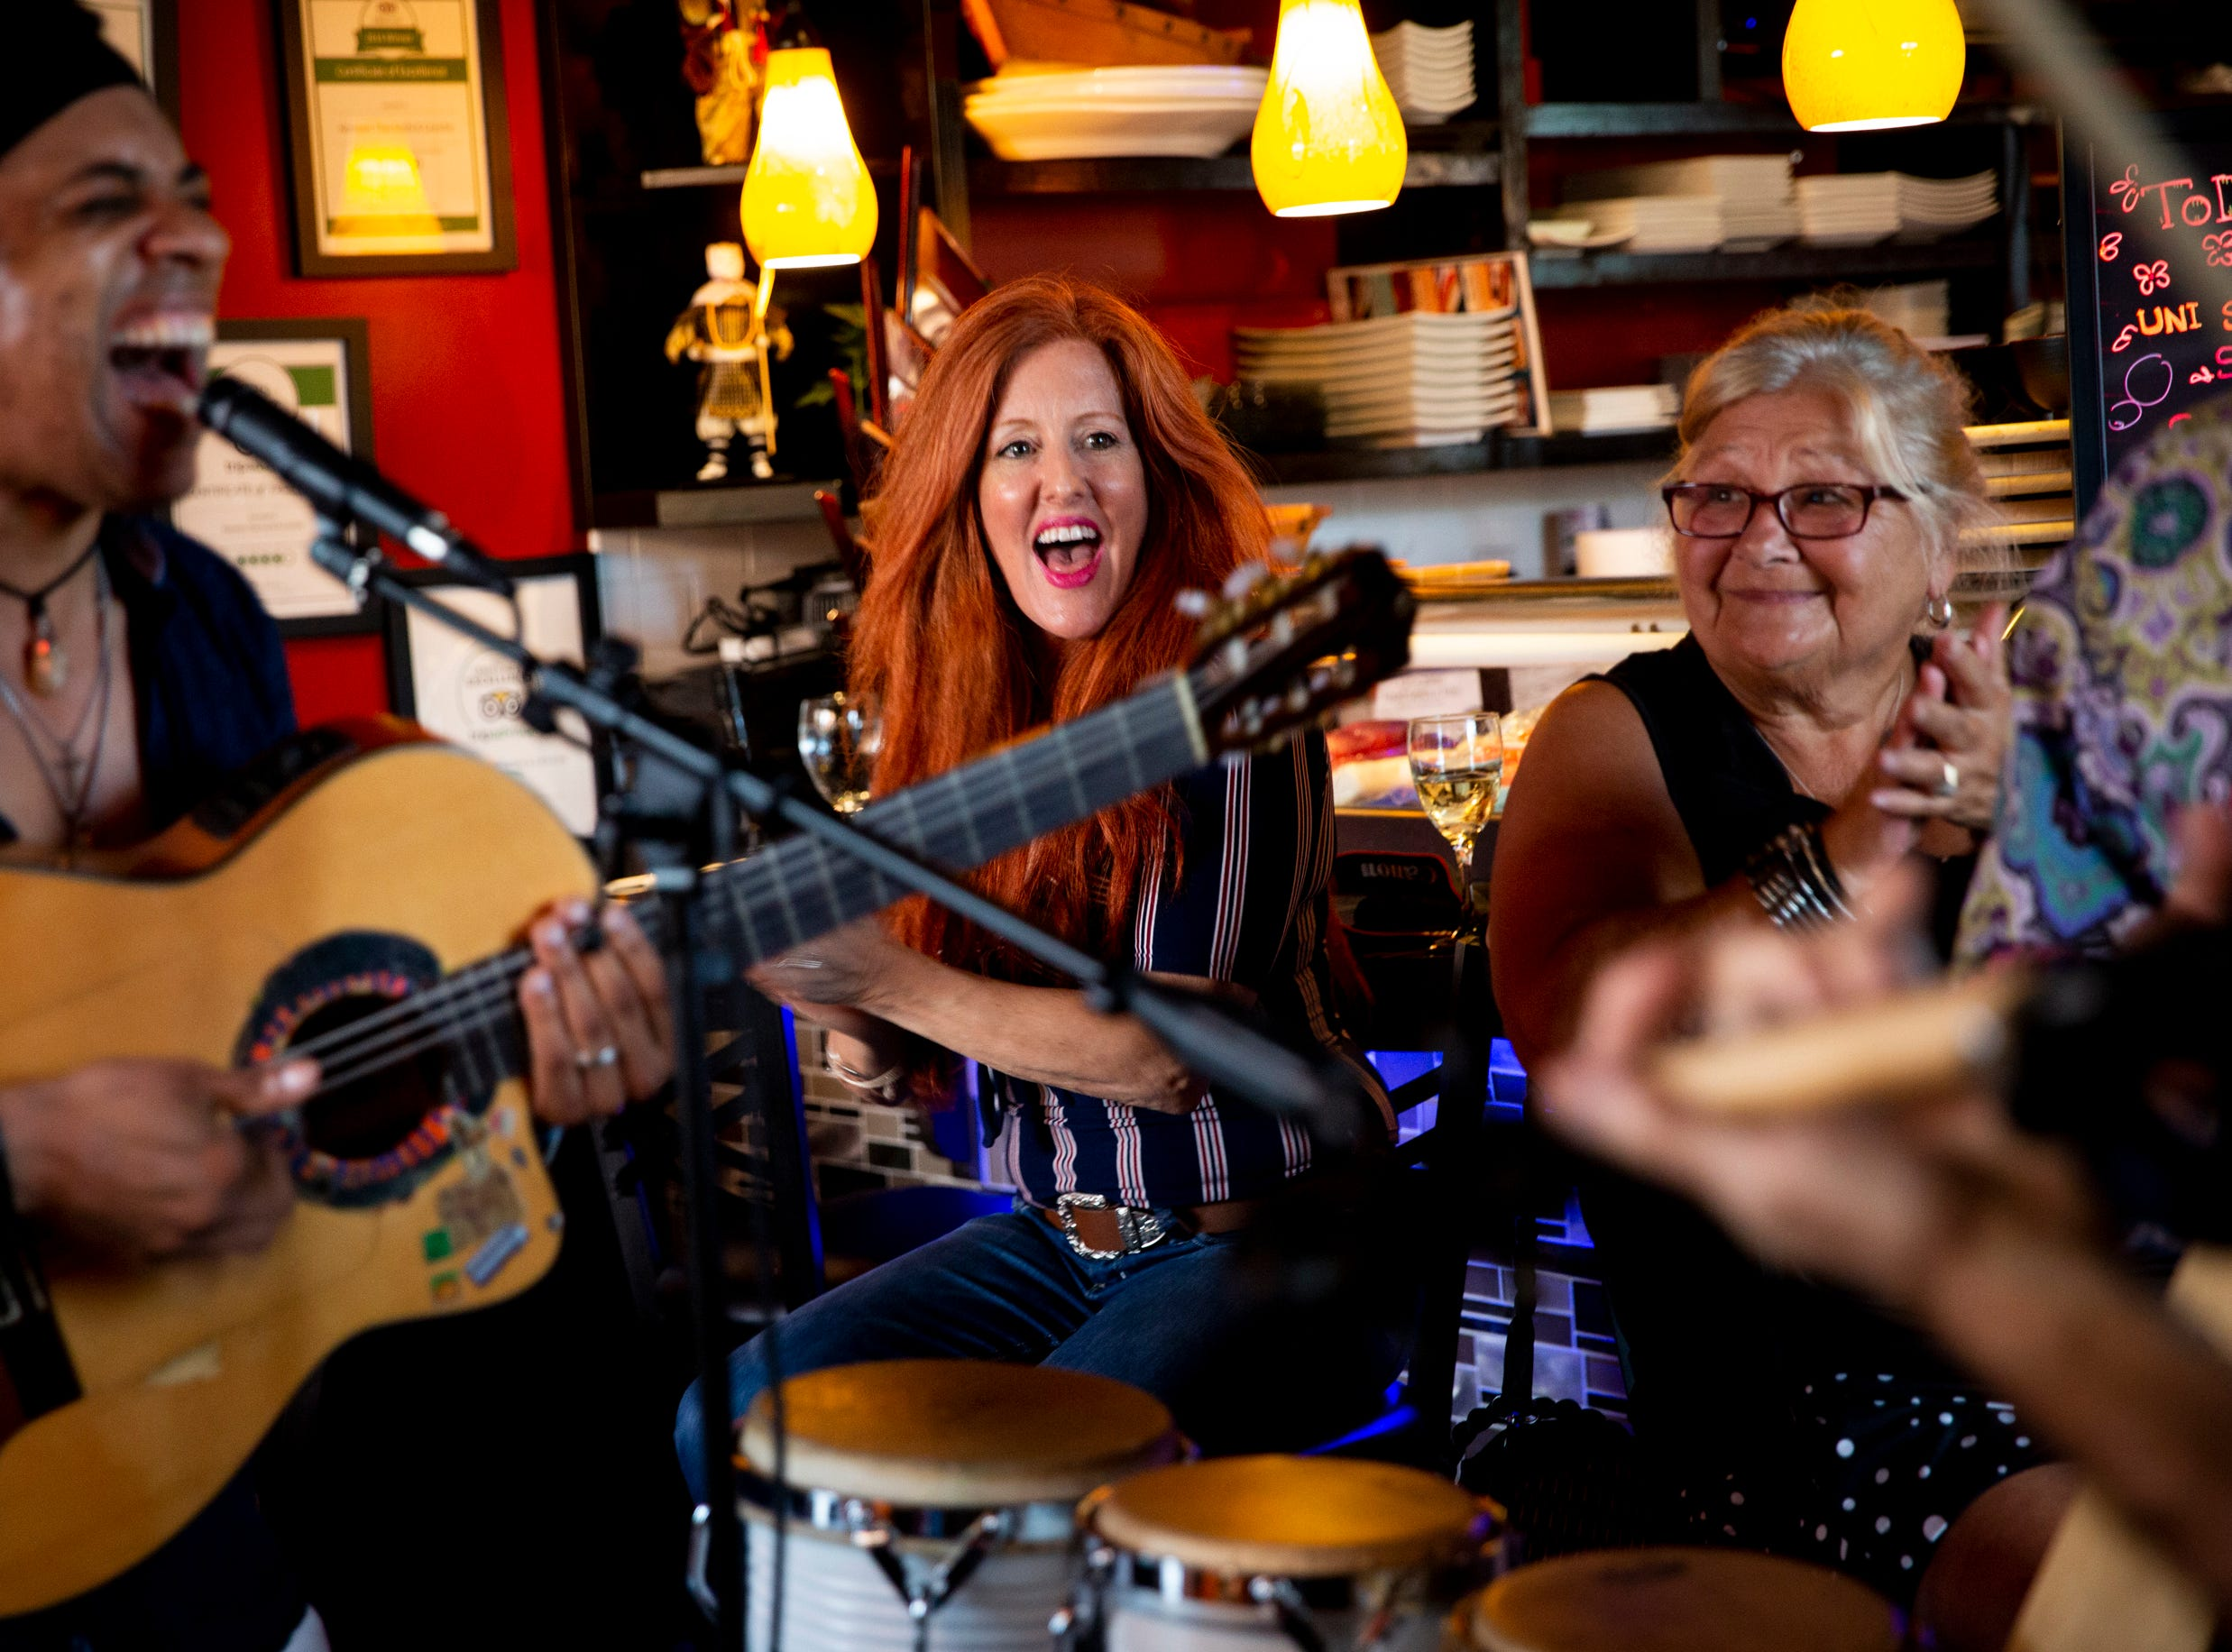 Shelly Renee Davis, left, and Danielle Gagmé, right, cheer and clap as they watch a performance by El Gato Solea and the Flamenco Fusion at Komoon Thai Sushi and Ceviche in Naples on Sunday, March 24, 2019.